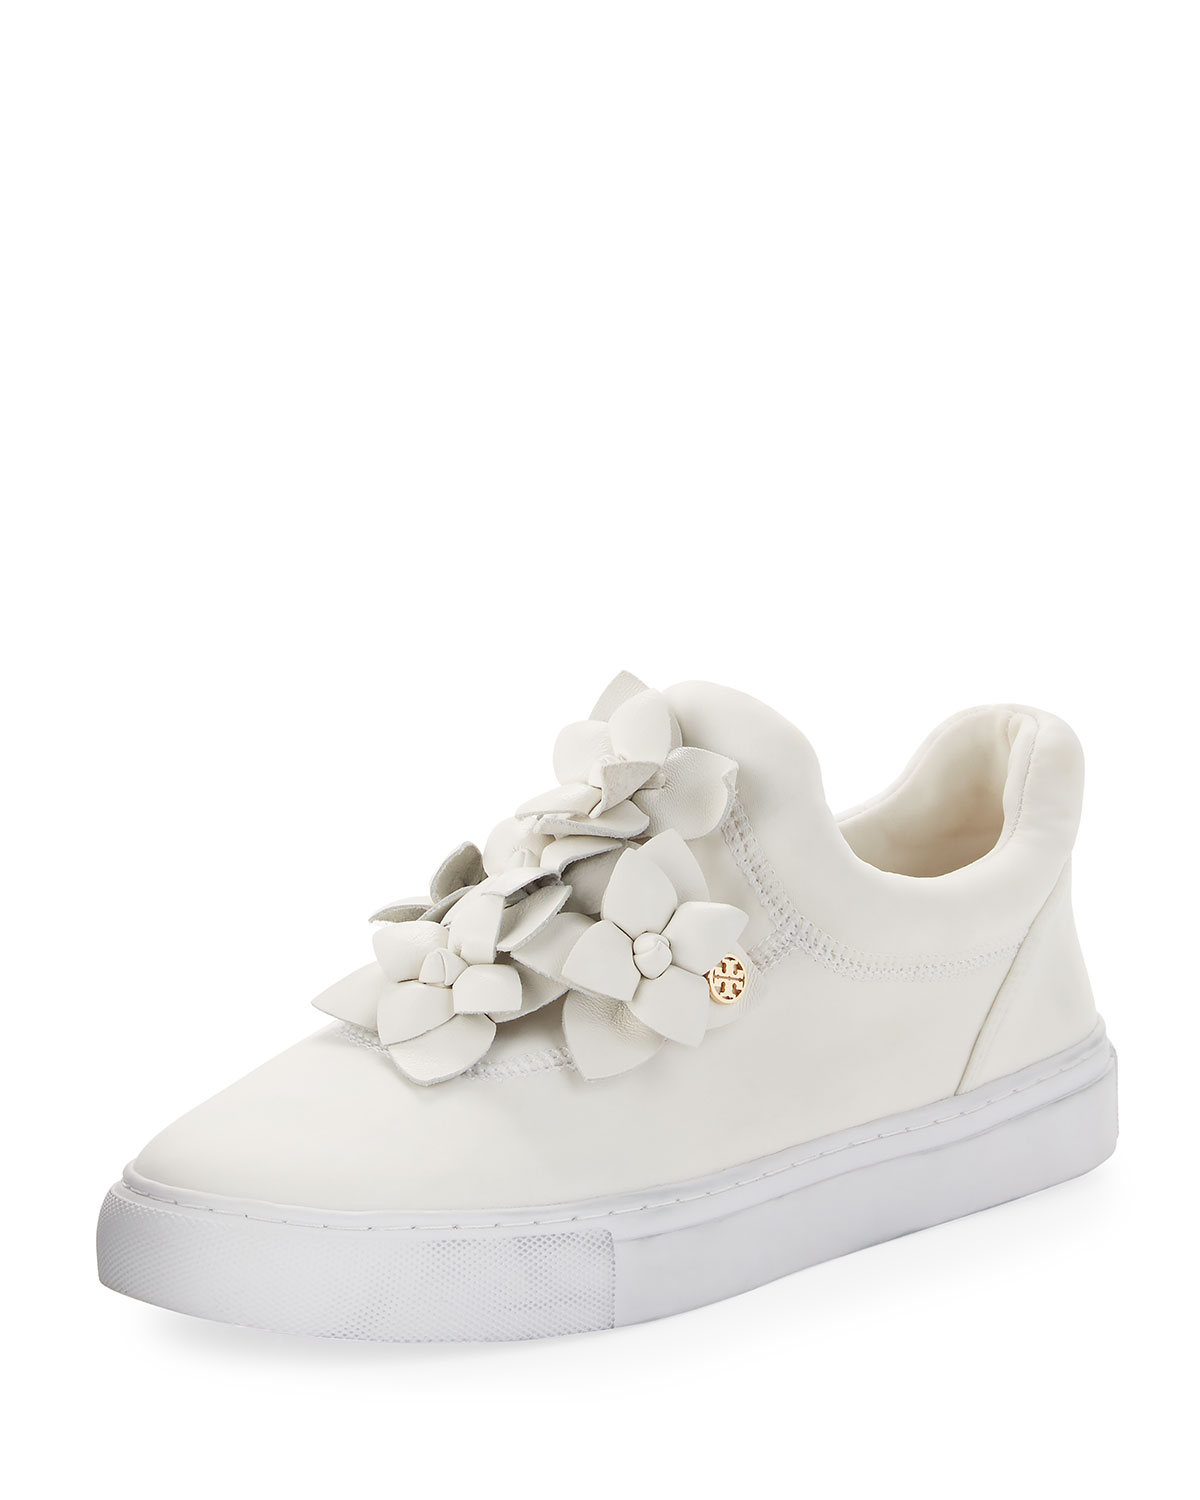 9ff66f96a6fc Tory Burch Blossom Neoprene Floral Sneaker